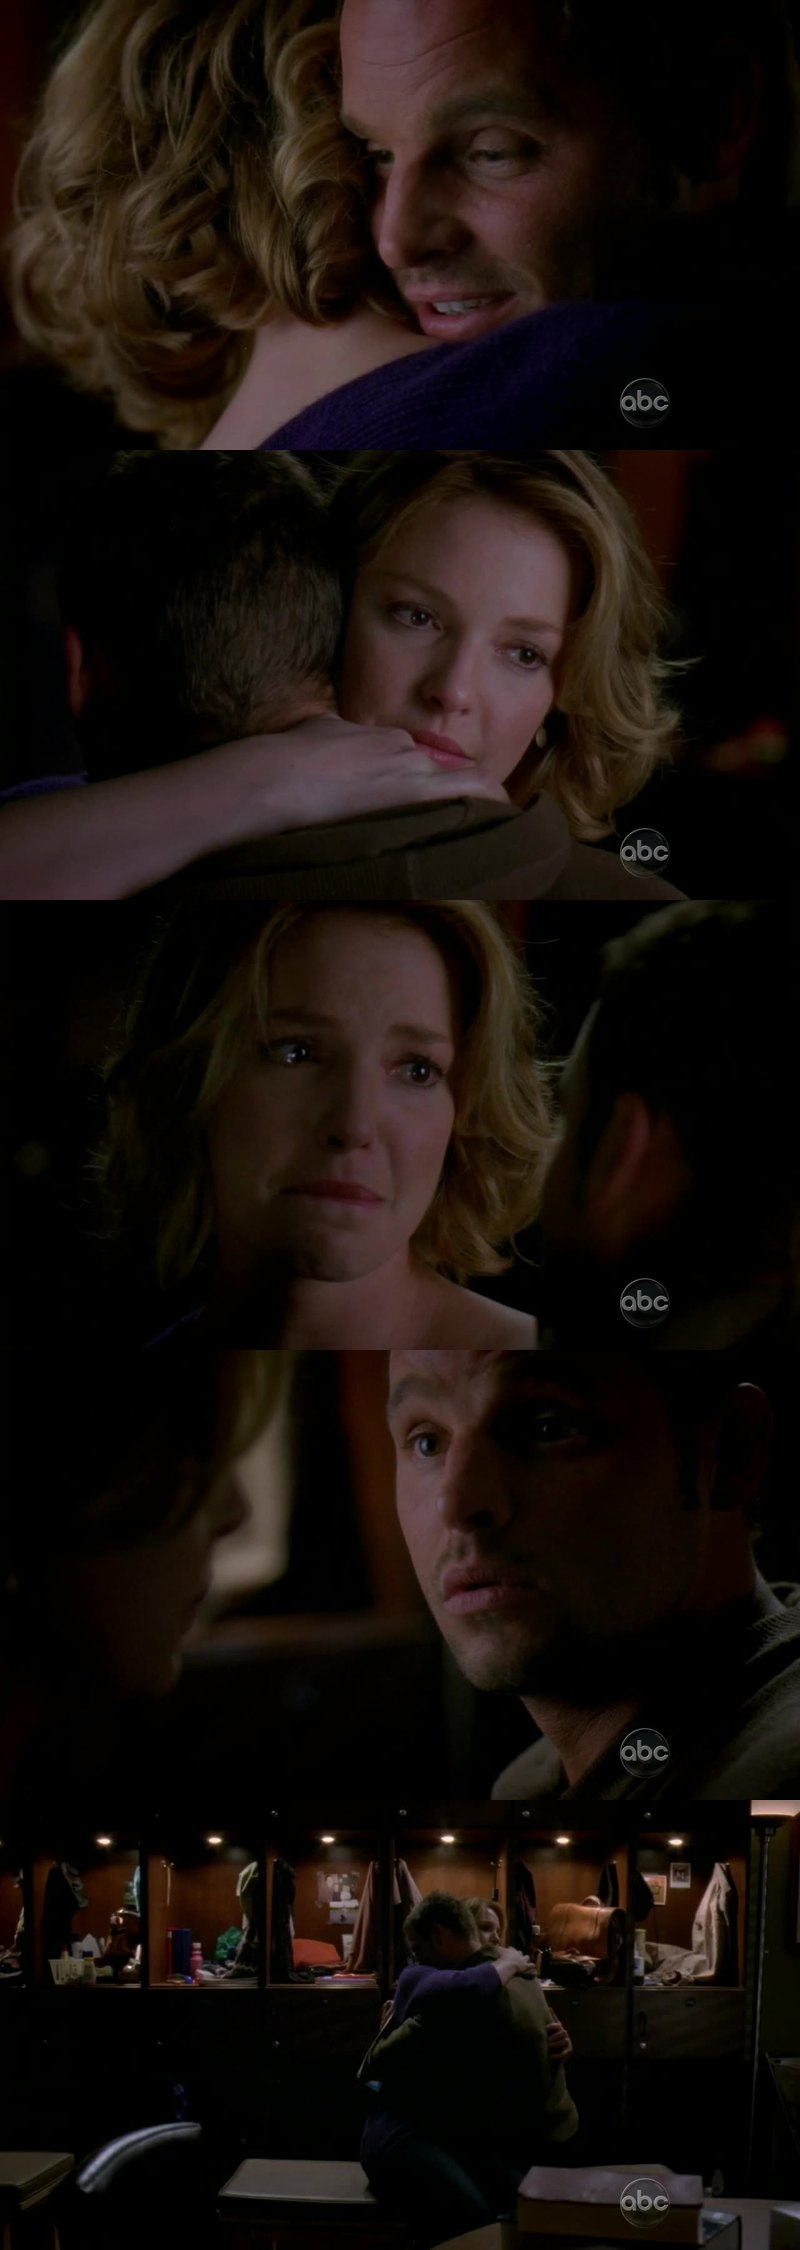 ❝But if you lose your love, if you think you're losing your love, then suddenly nothing else matters. ❞. Oh Izzie. I will miss you. 💔